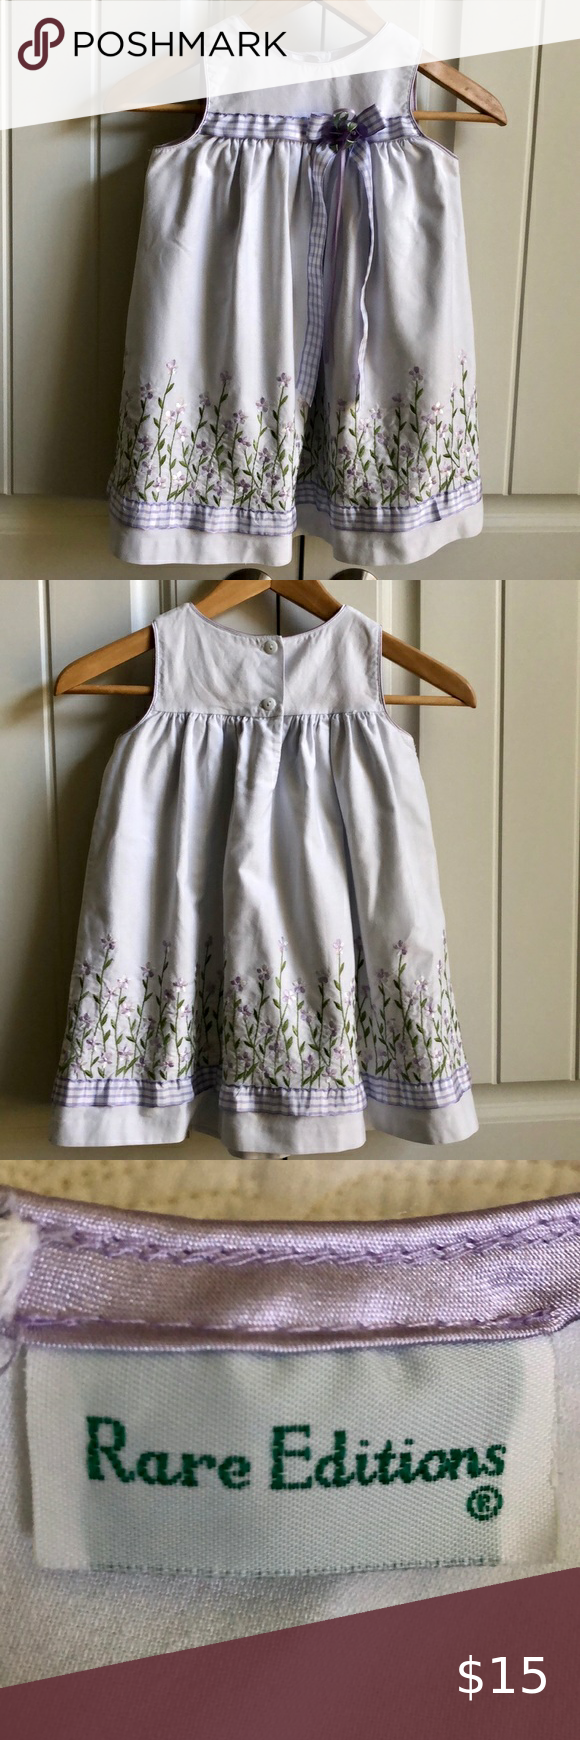 2 24 Rare Editions Embroidered Dress 4t In 2020 Rare Editions Dress Purple Girls Dress Toddler Girl Dresses [ 1740 x 580 Pixel ]